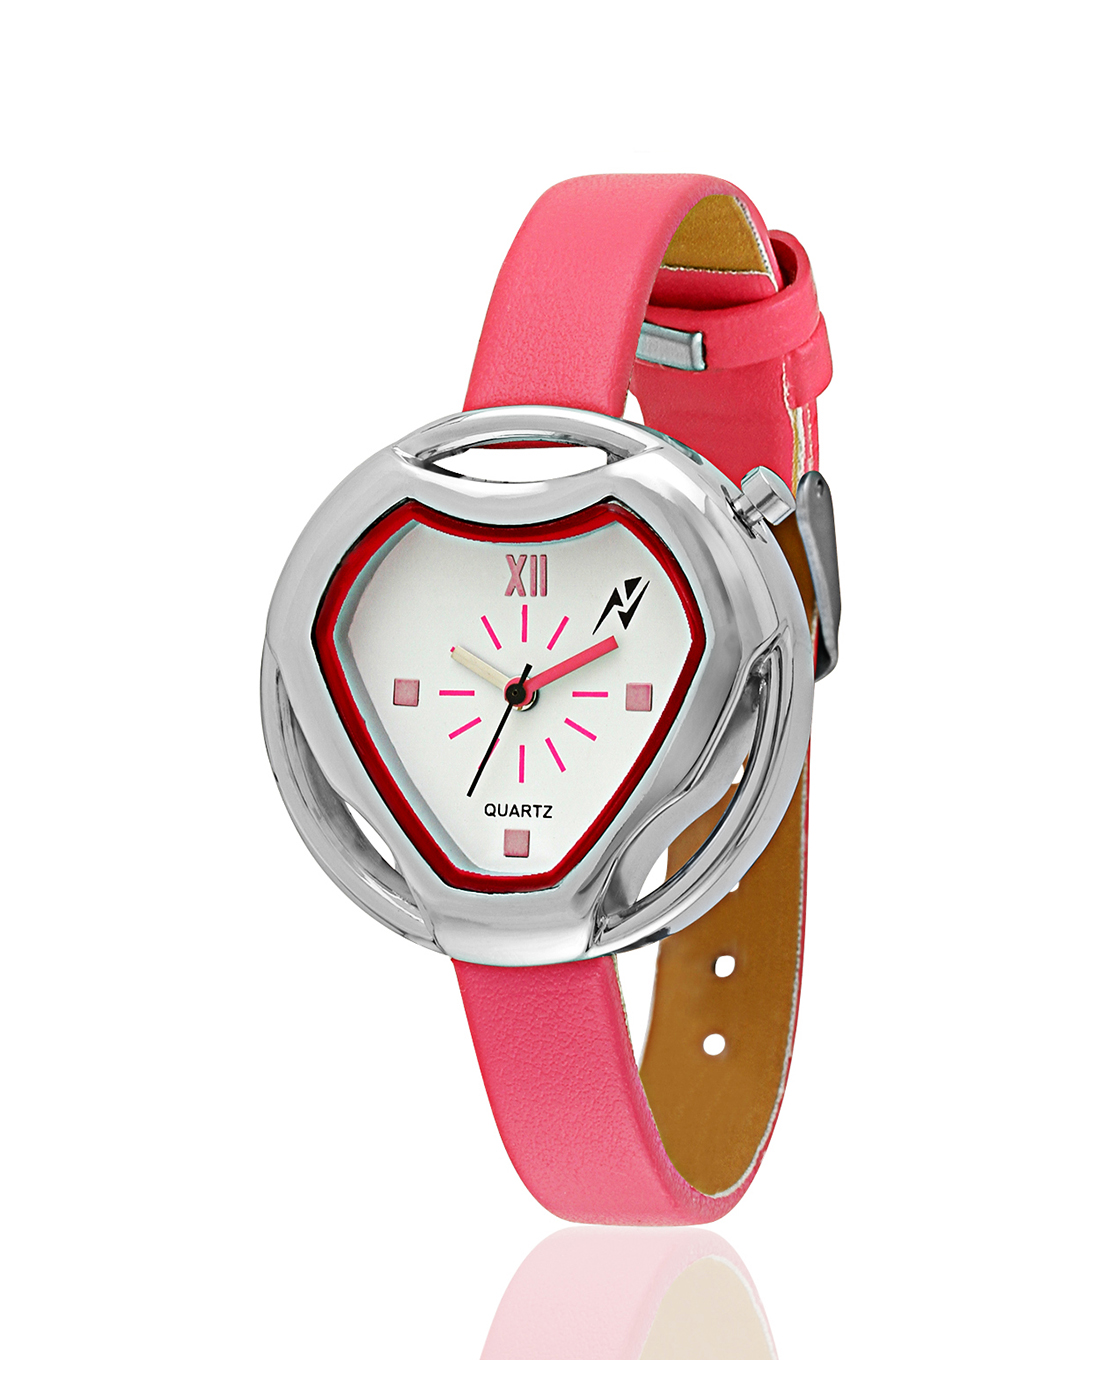 Yepme Womens Analog Watch - Red